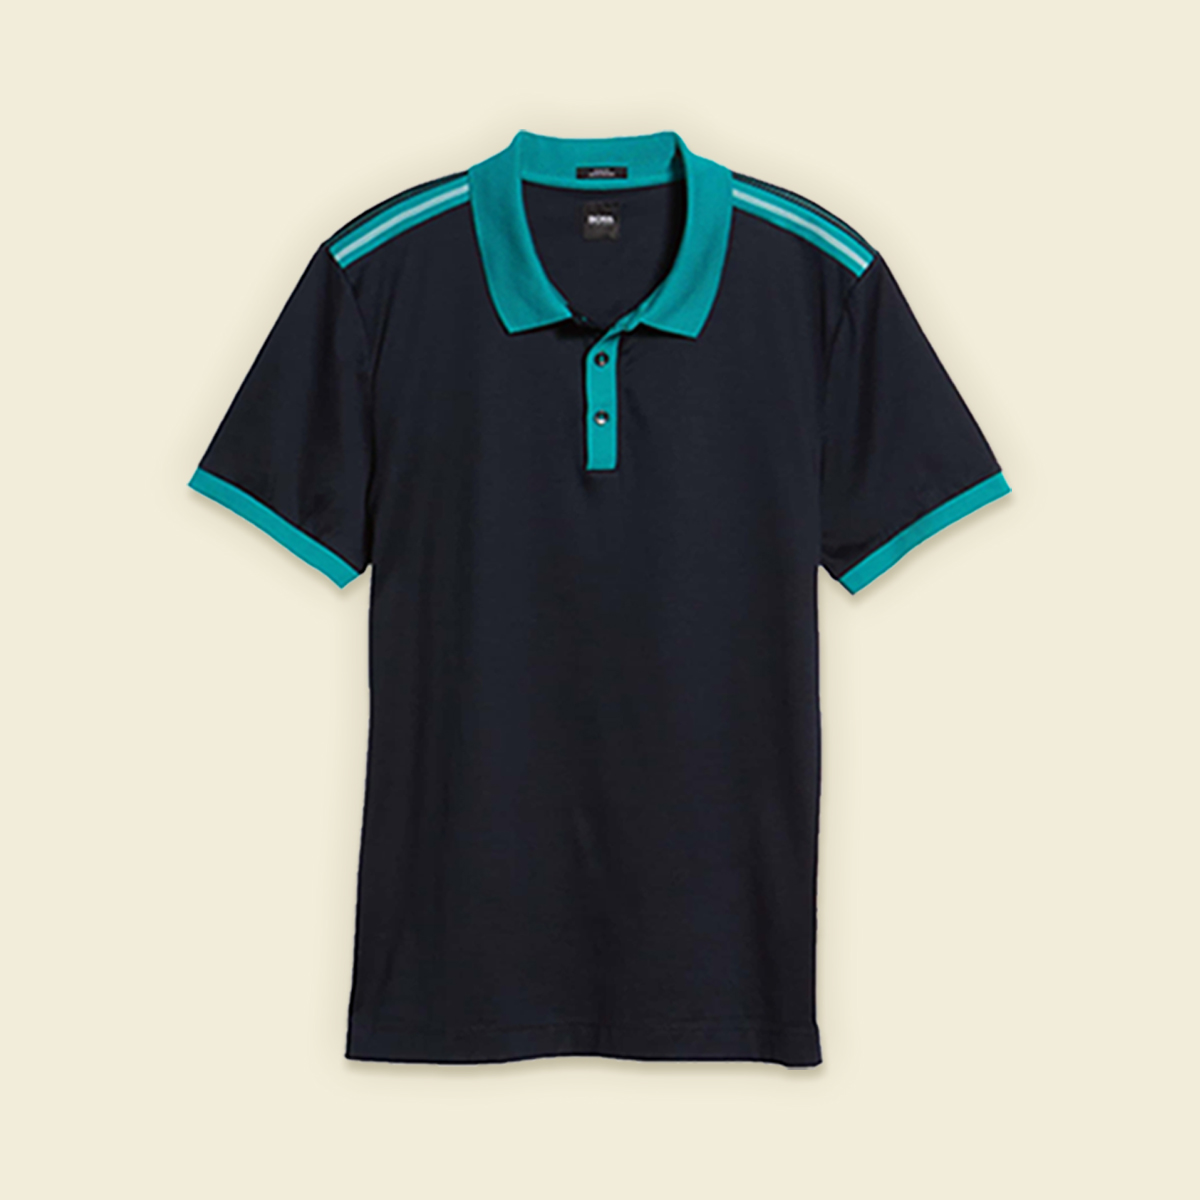 Black polo shirt with teal collar.